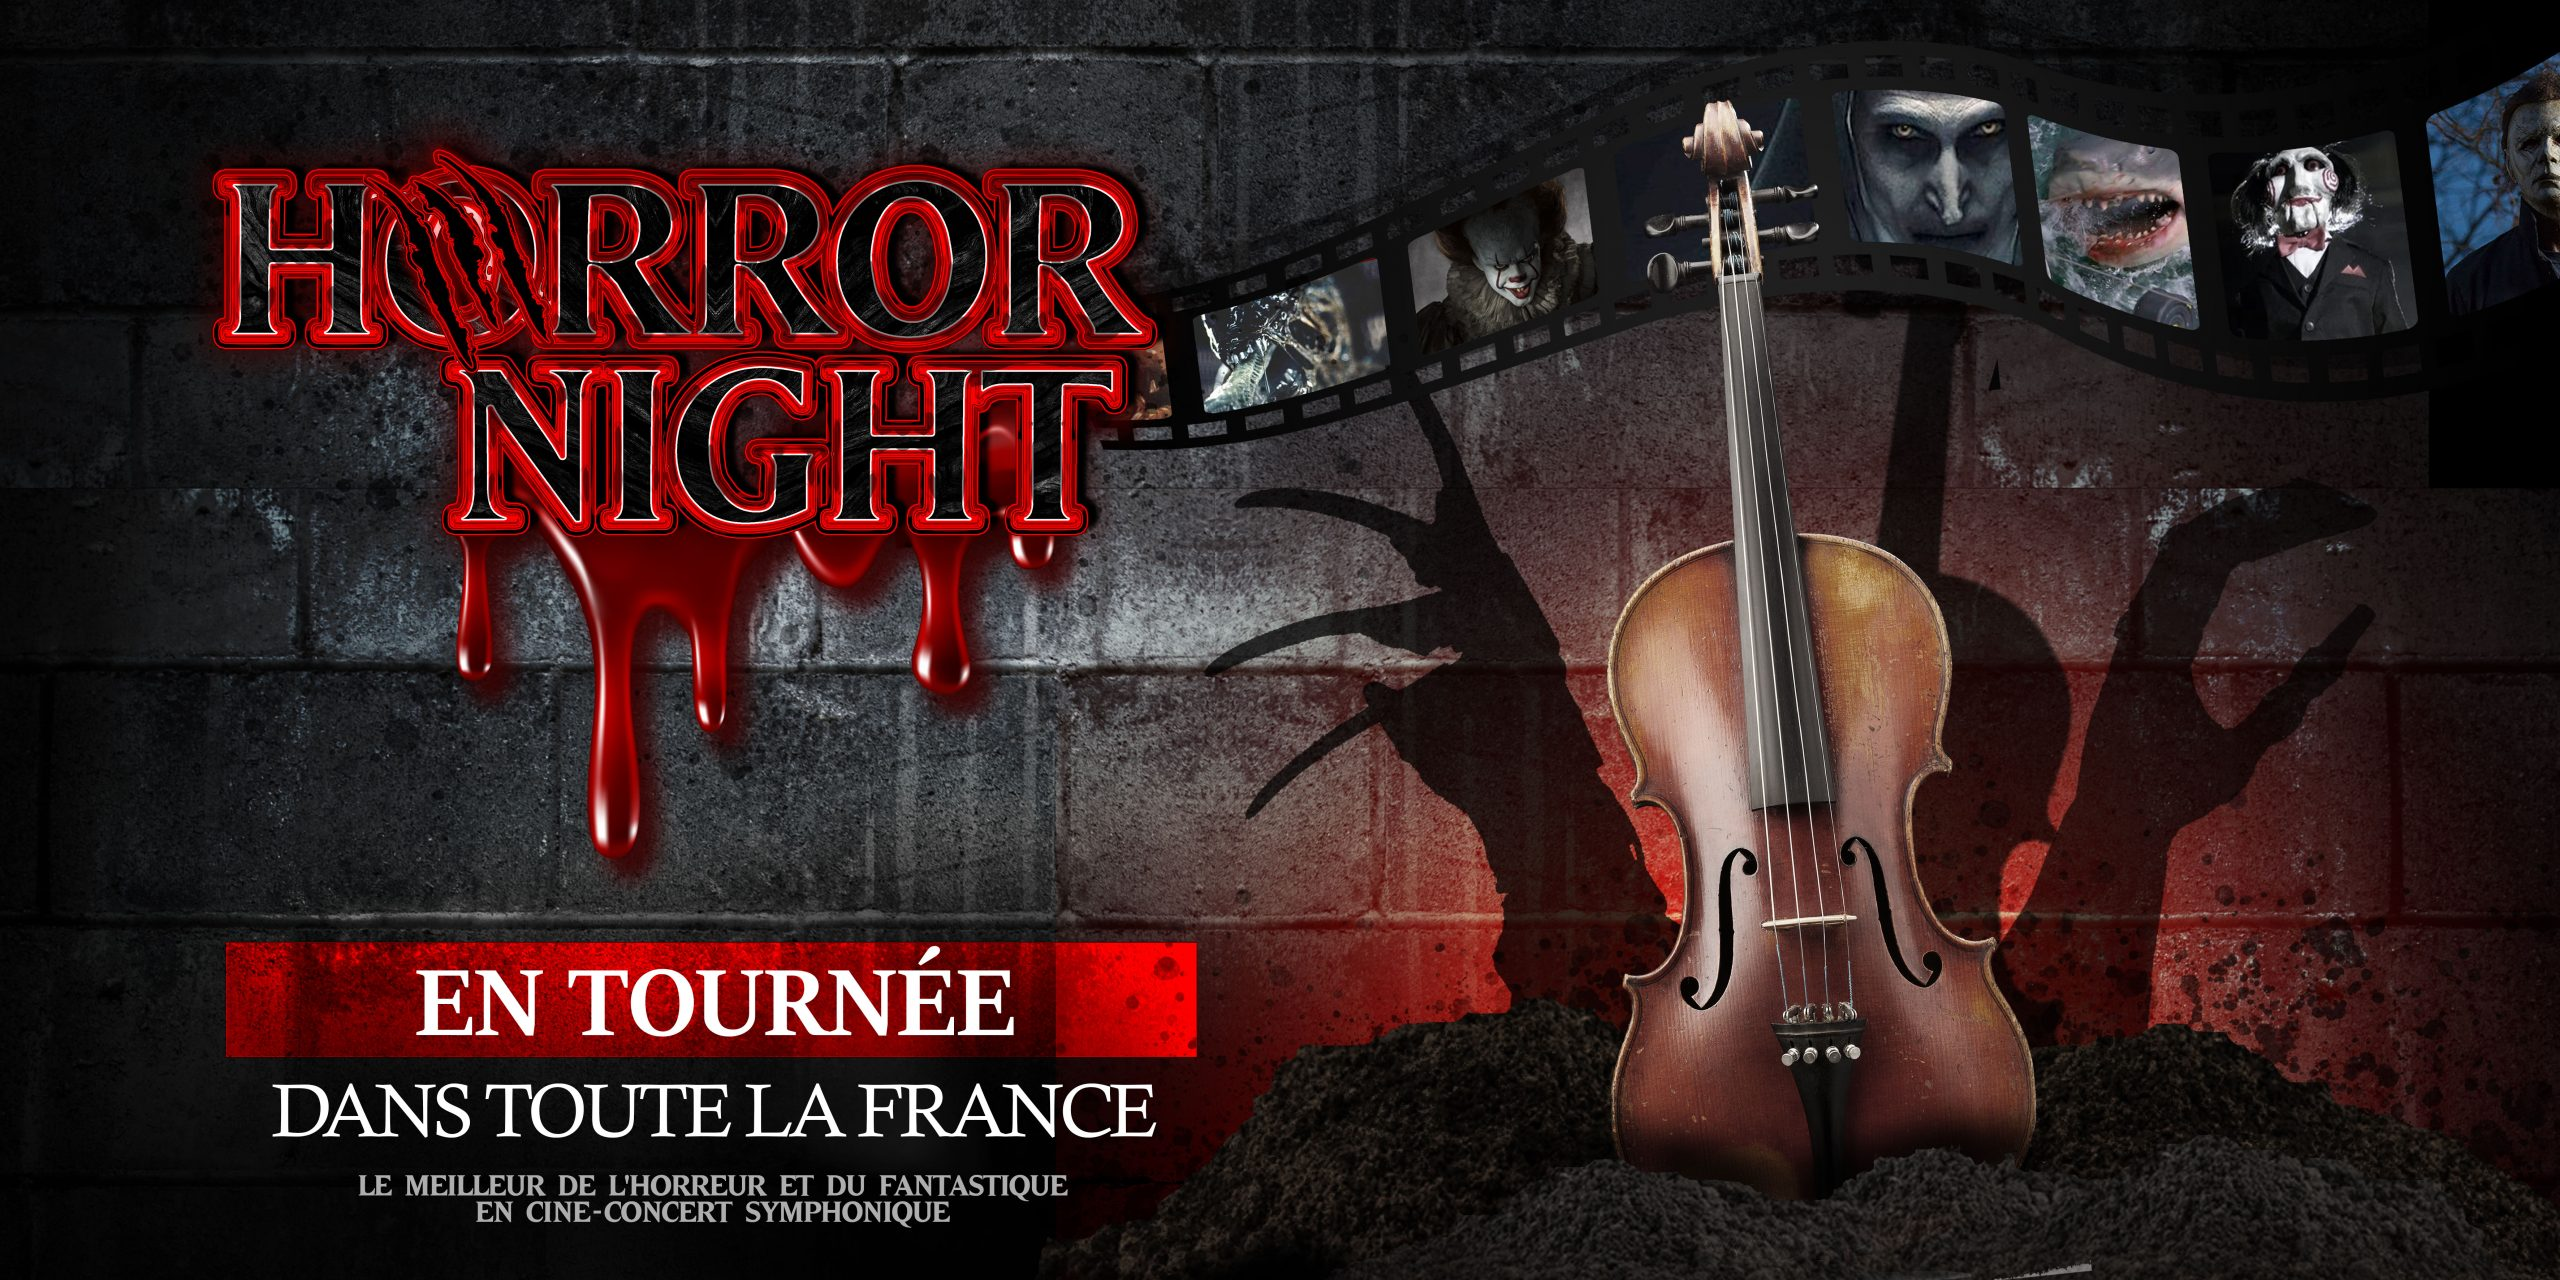 Horror night banner